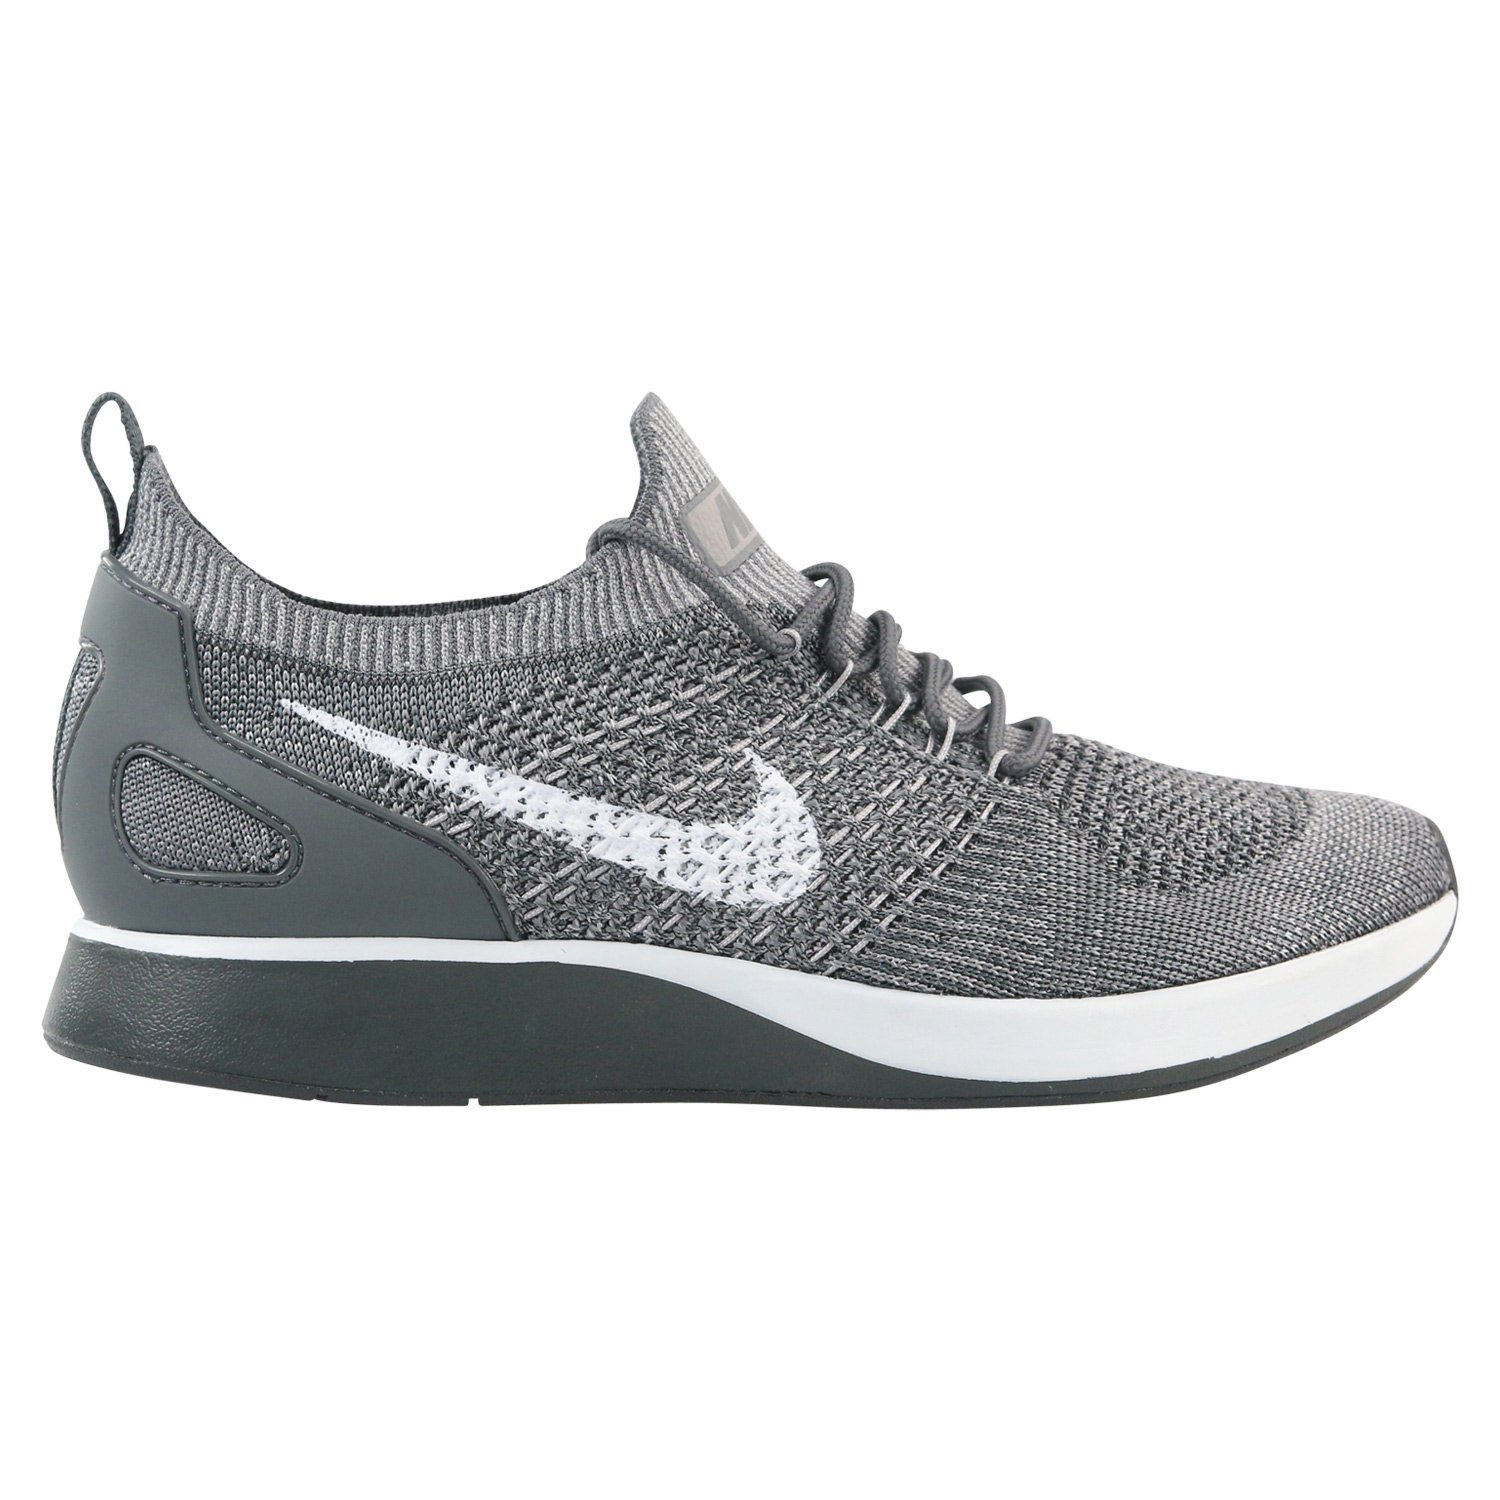 518cc29c8c71 Galleon - NIKE Air Zoom Mariah Flyknit Racer Mens Running Shoes (11.5 D(M)  US)